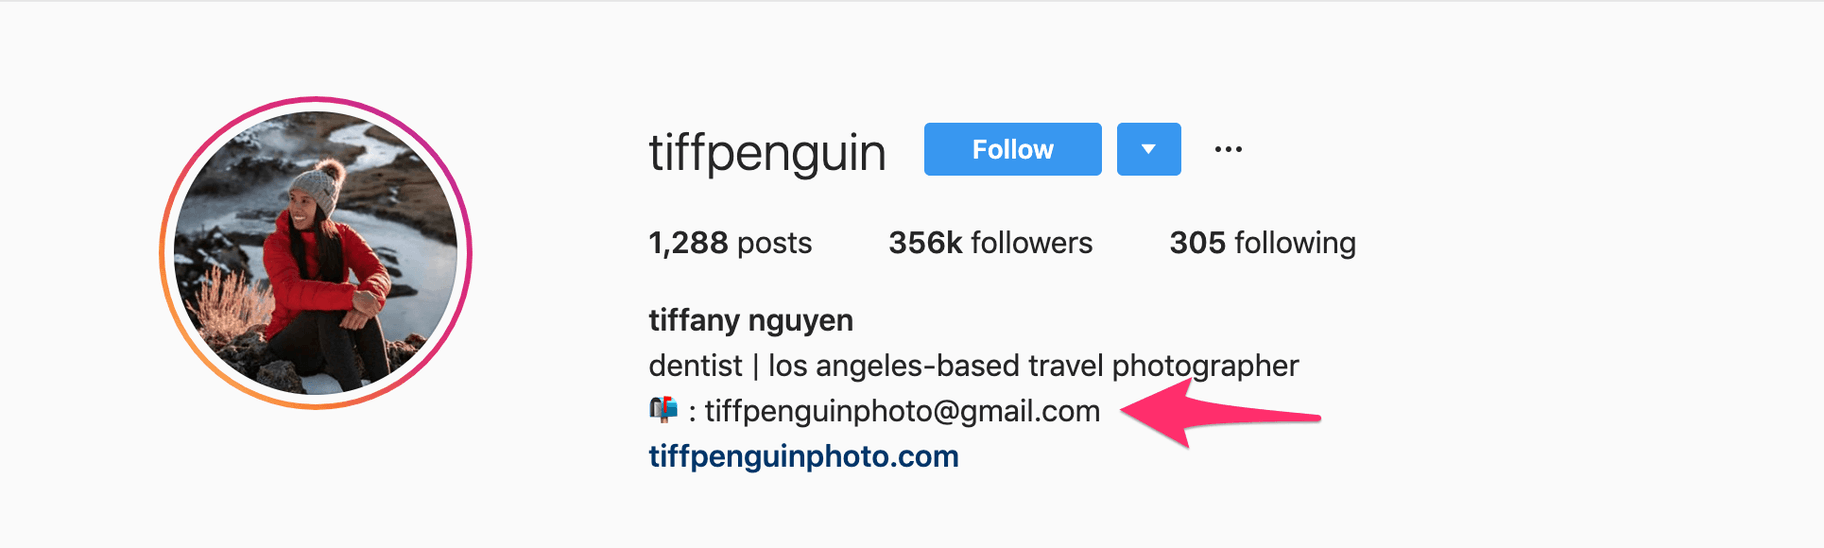 Screenshot of instagram profile with contact email